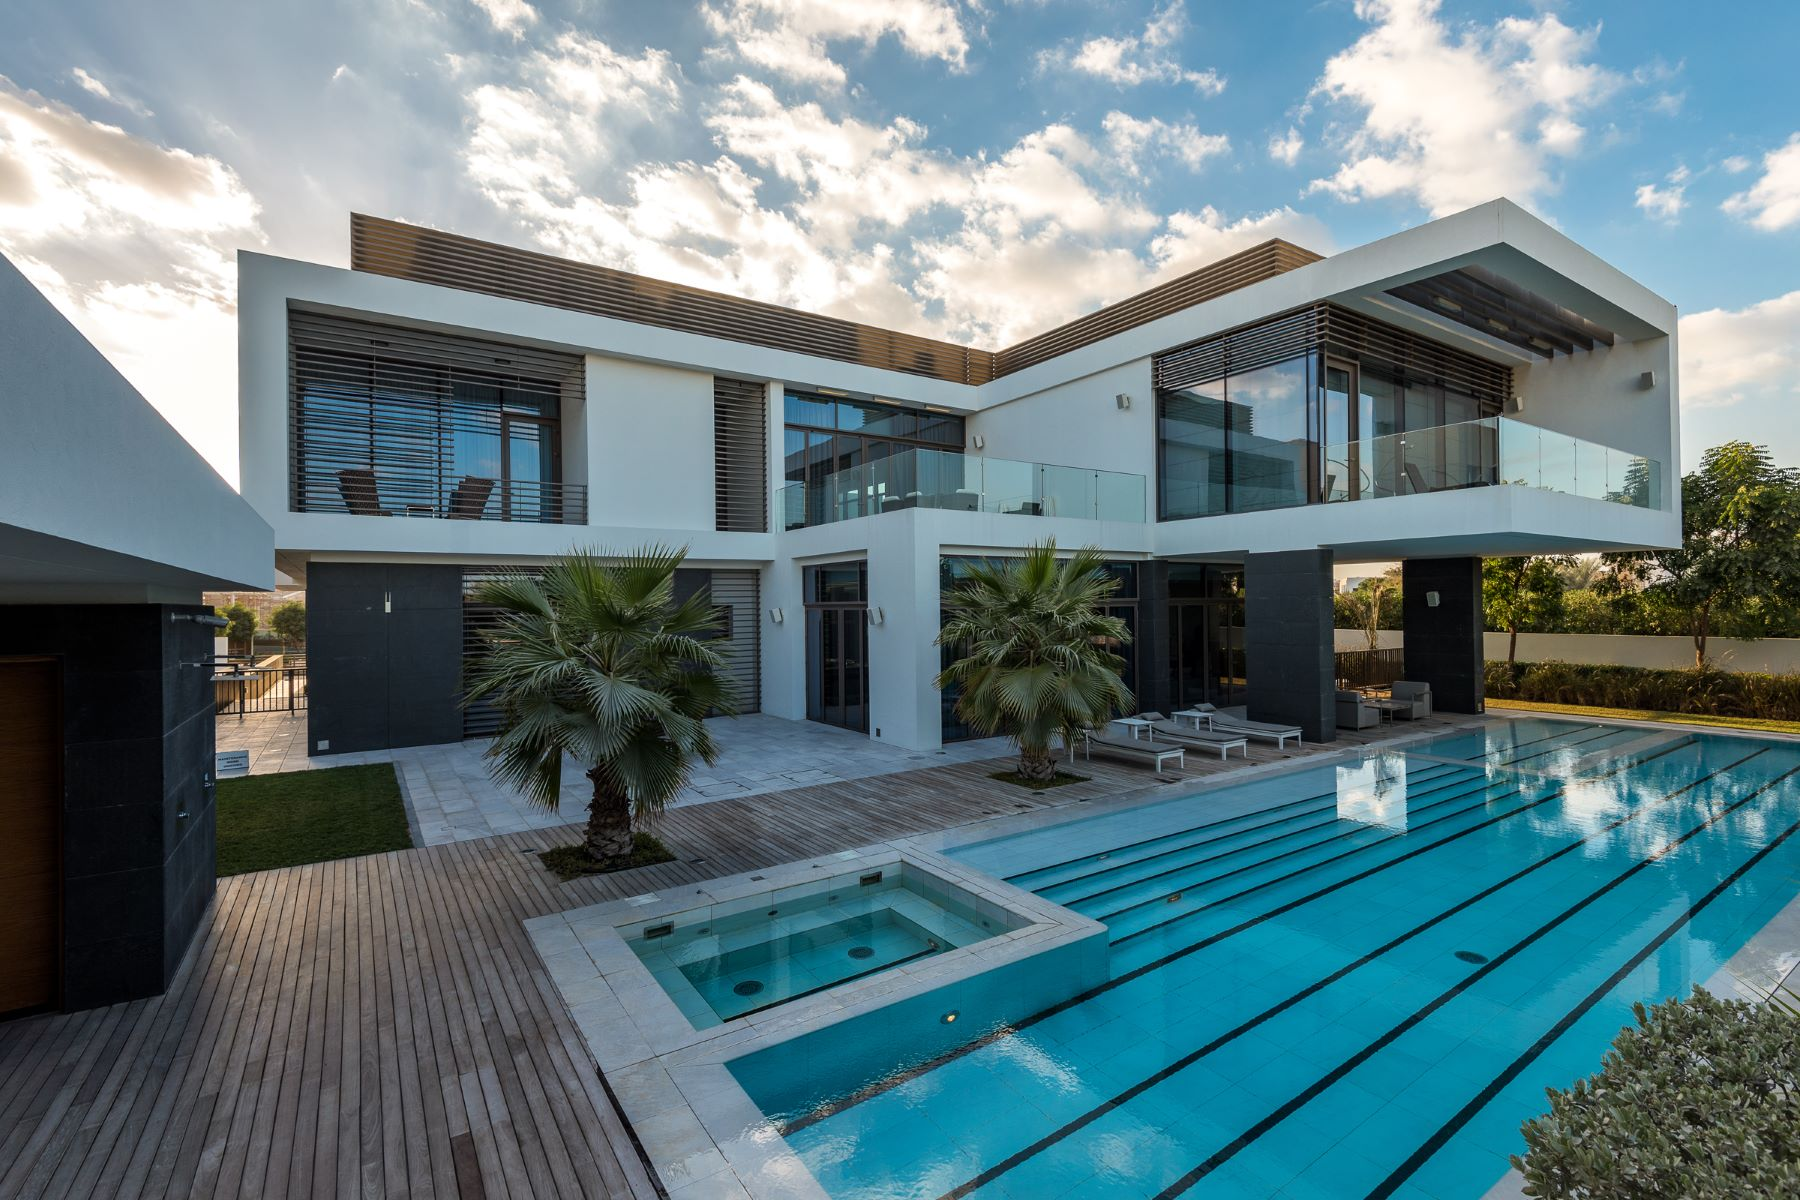 Single Family Home for Sale at Contemporary Mansion on the Crystal Lagoon Dubai, United Arab Emirates